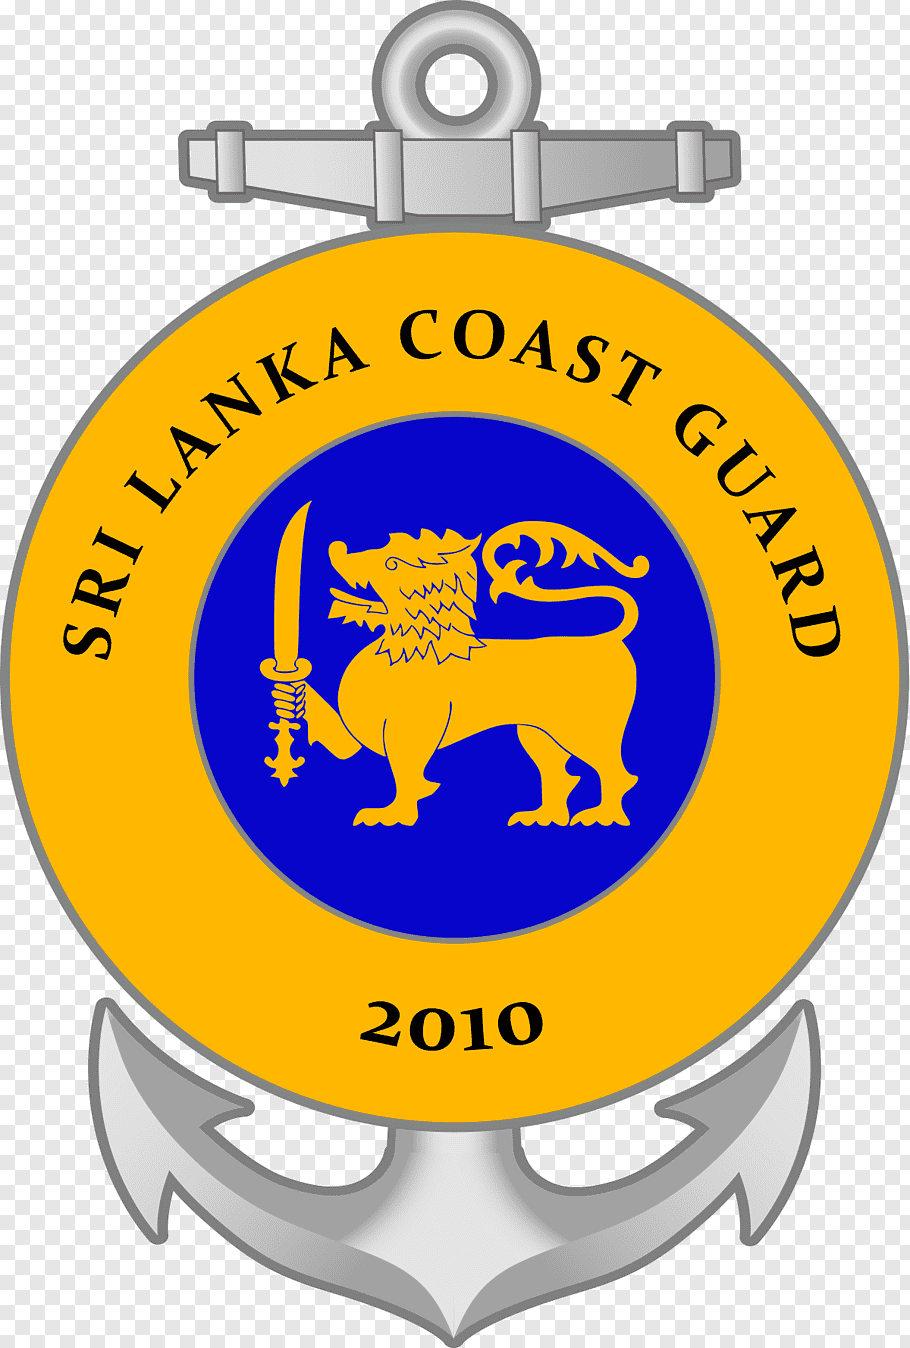 Japan, Sri Lanka, Sri Lanka Coast Guard, Japan Coast Guard.